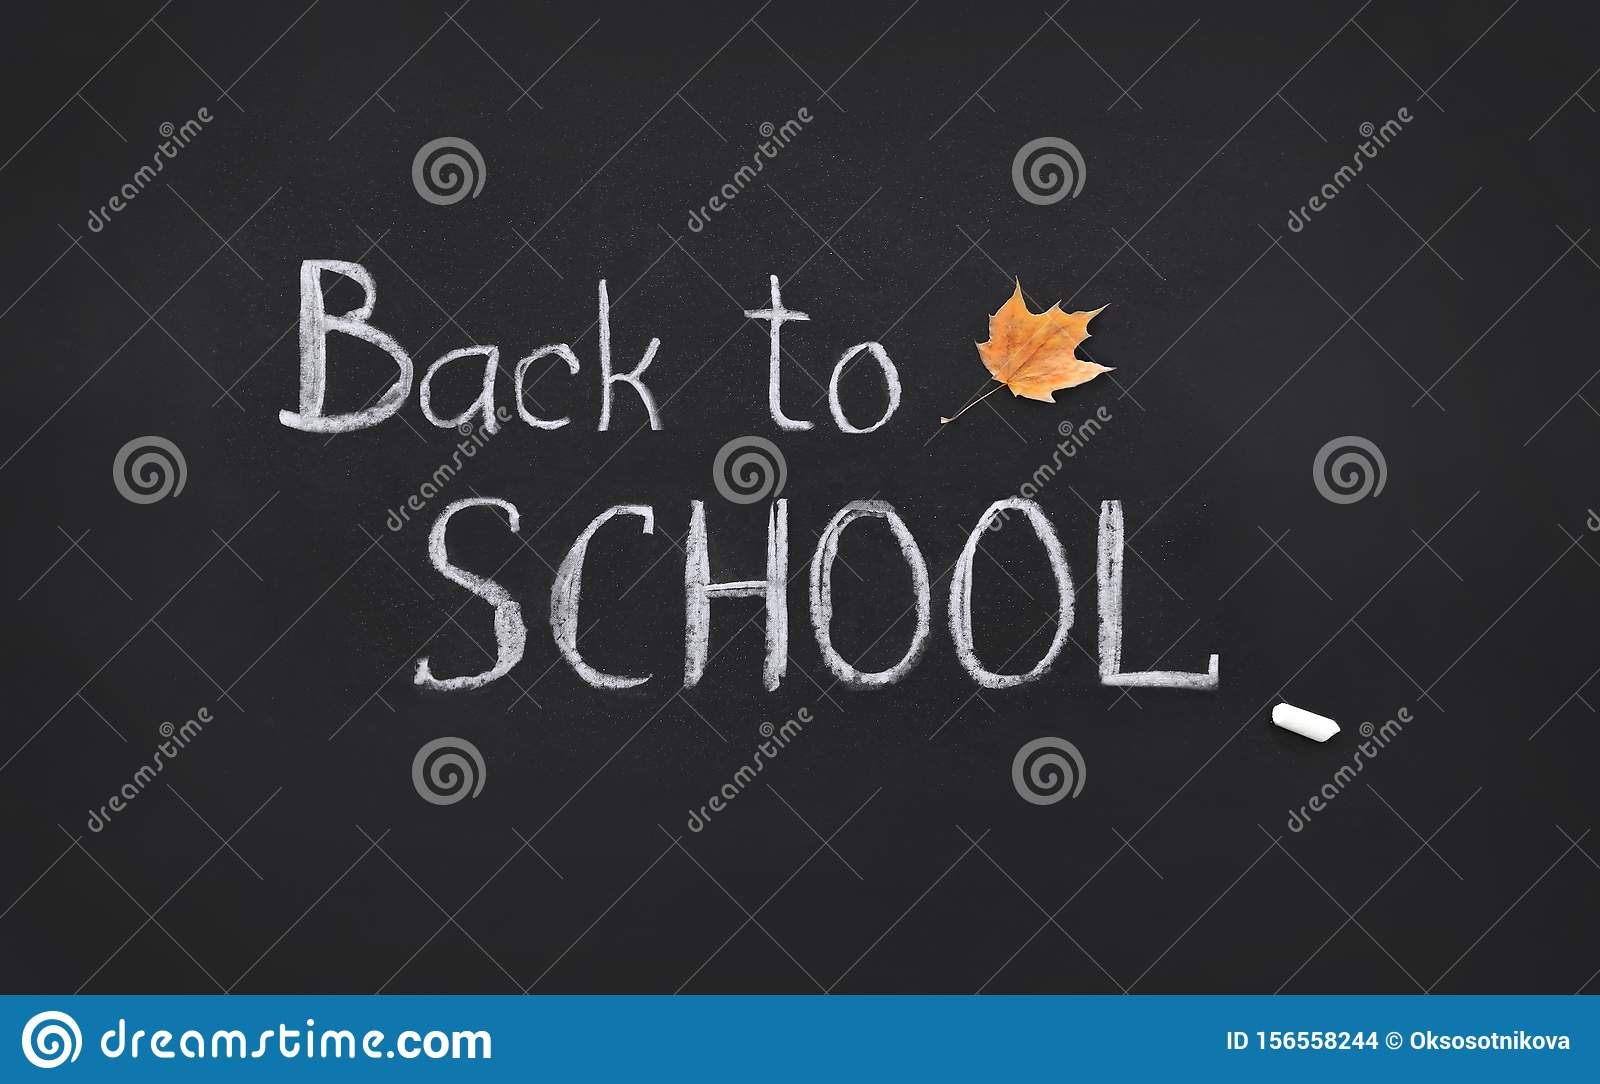 Back to school, template, handwritten in chalk, text on a black board, collage